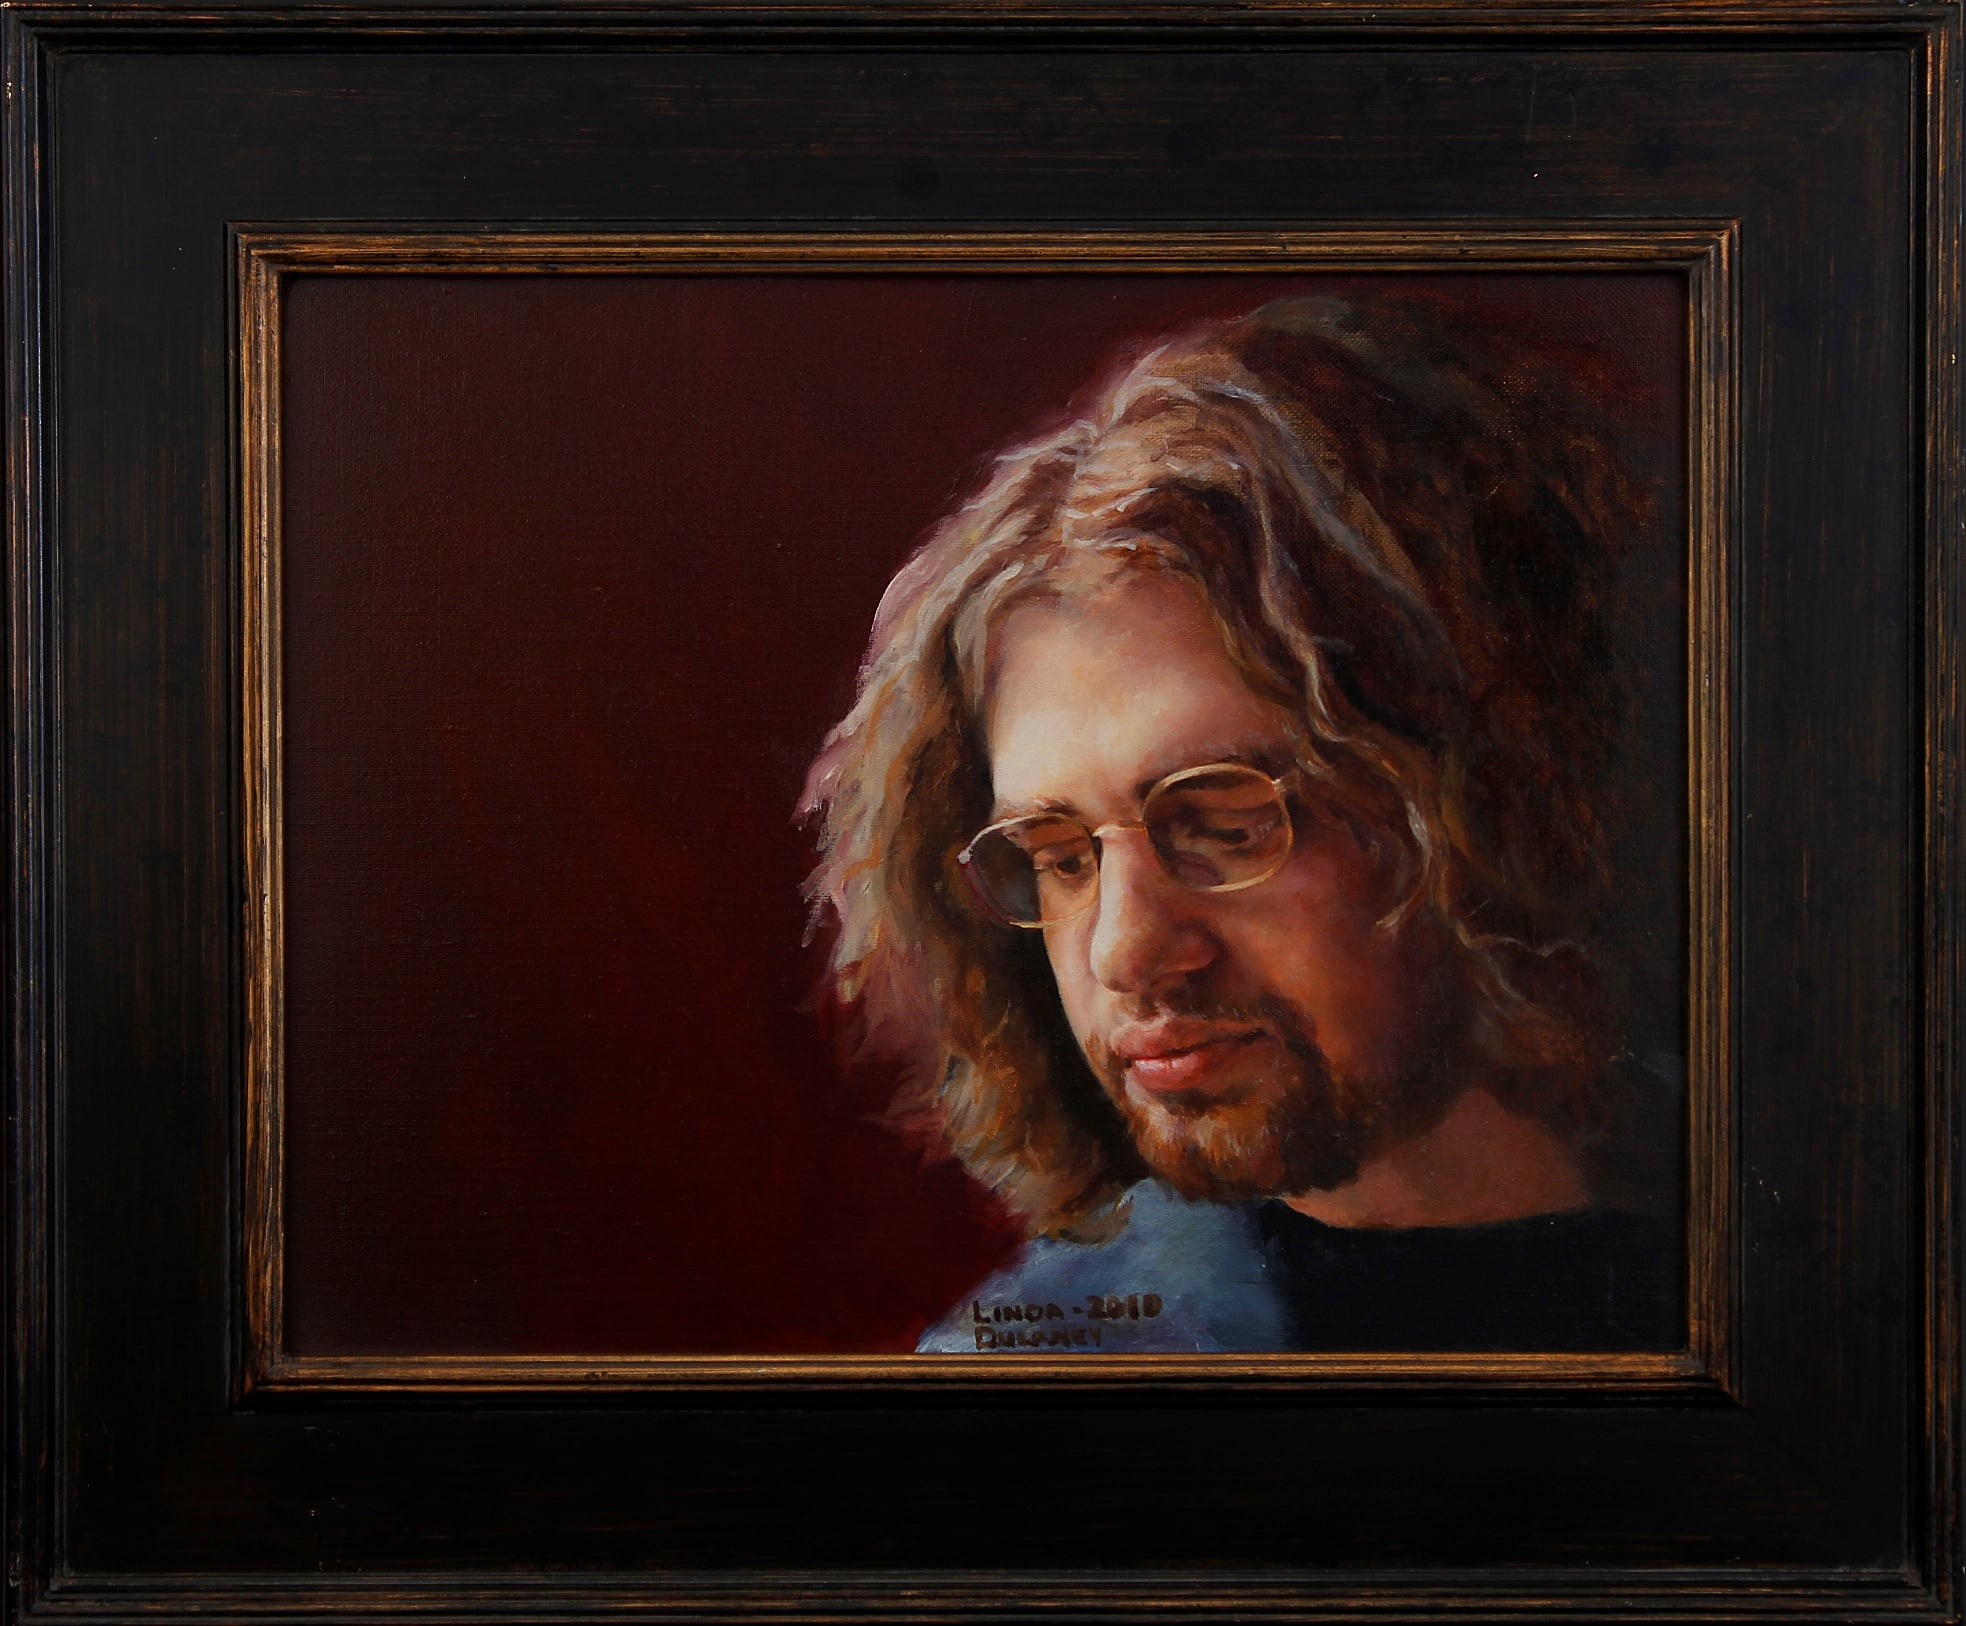 Portrait of Evan by Linda Dulaney, Oil on Canvas, 2010